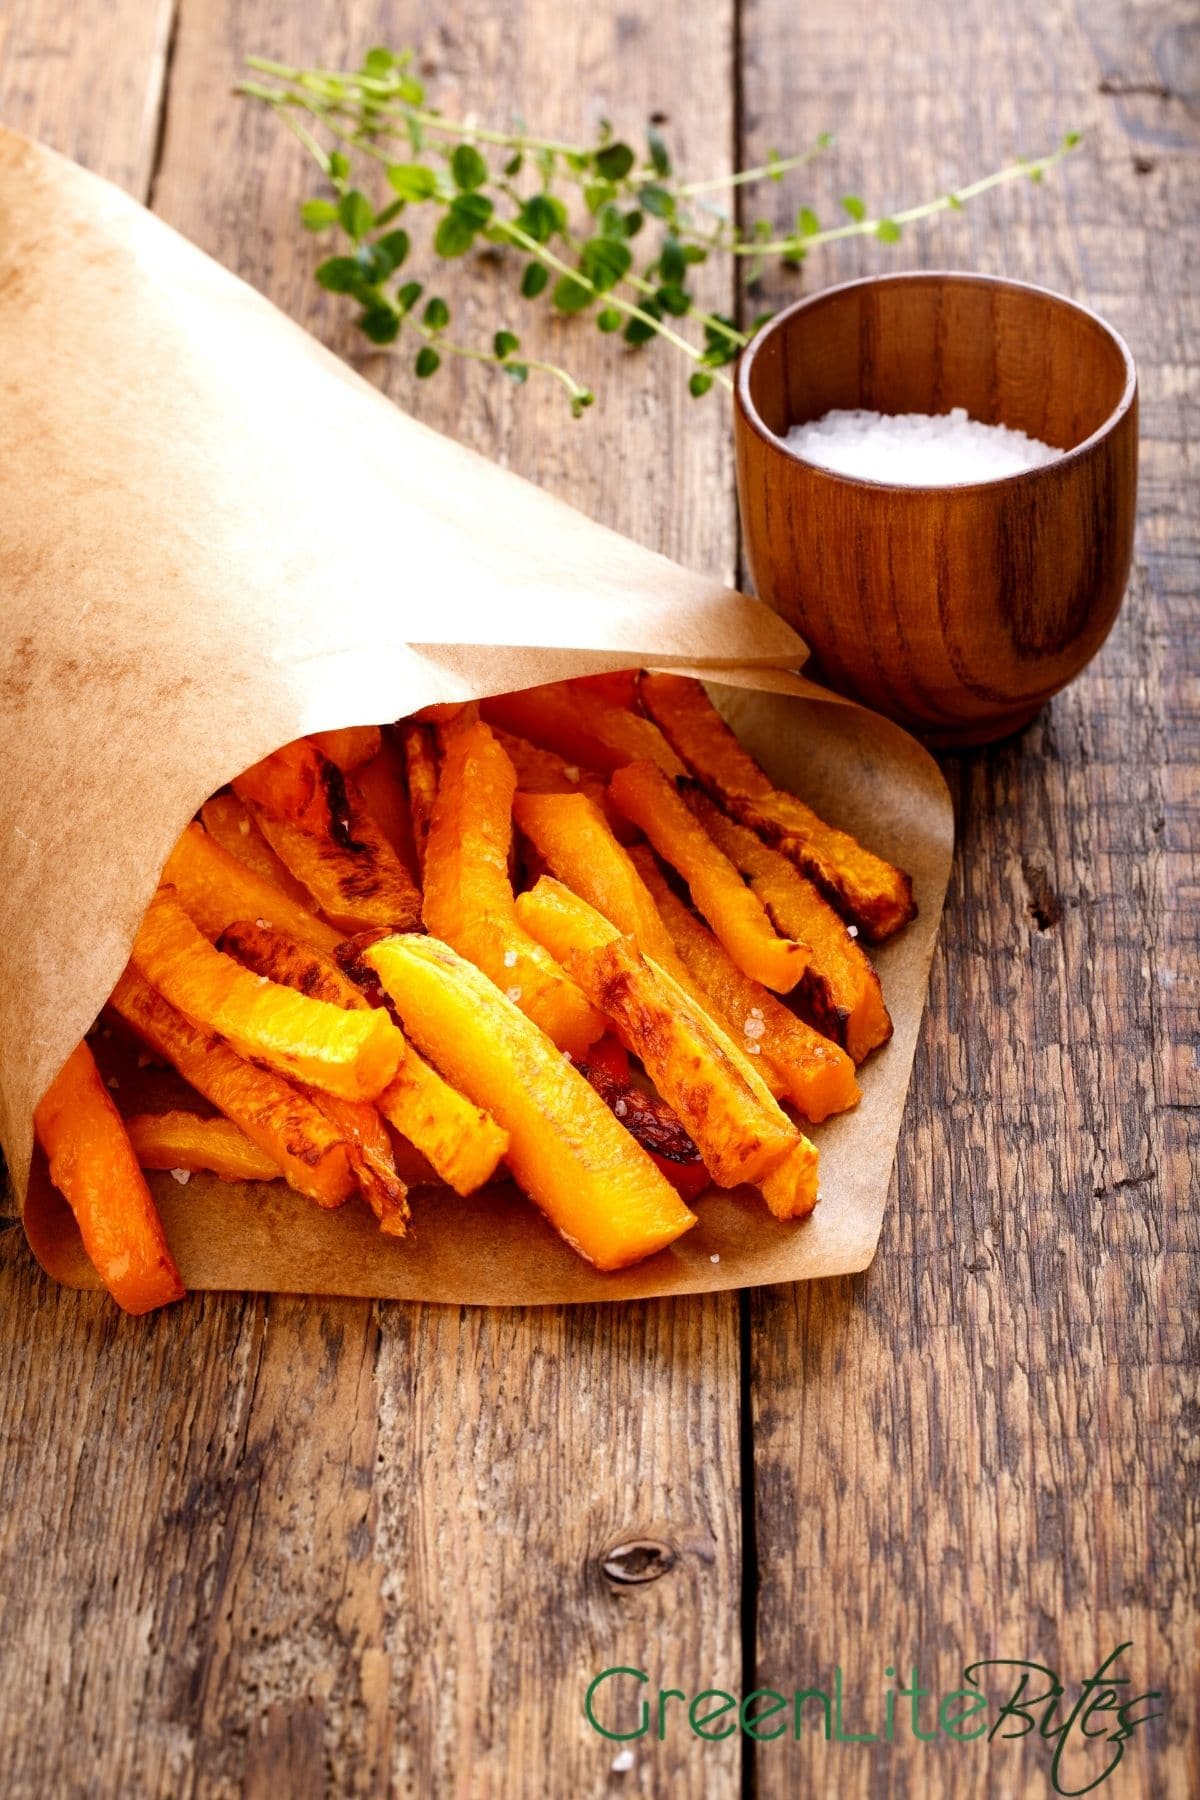 Paper bag of butternut squash fries